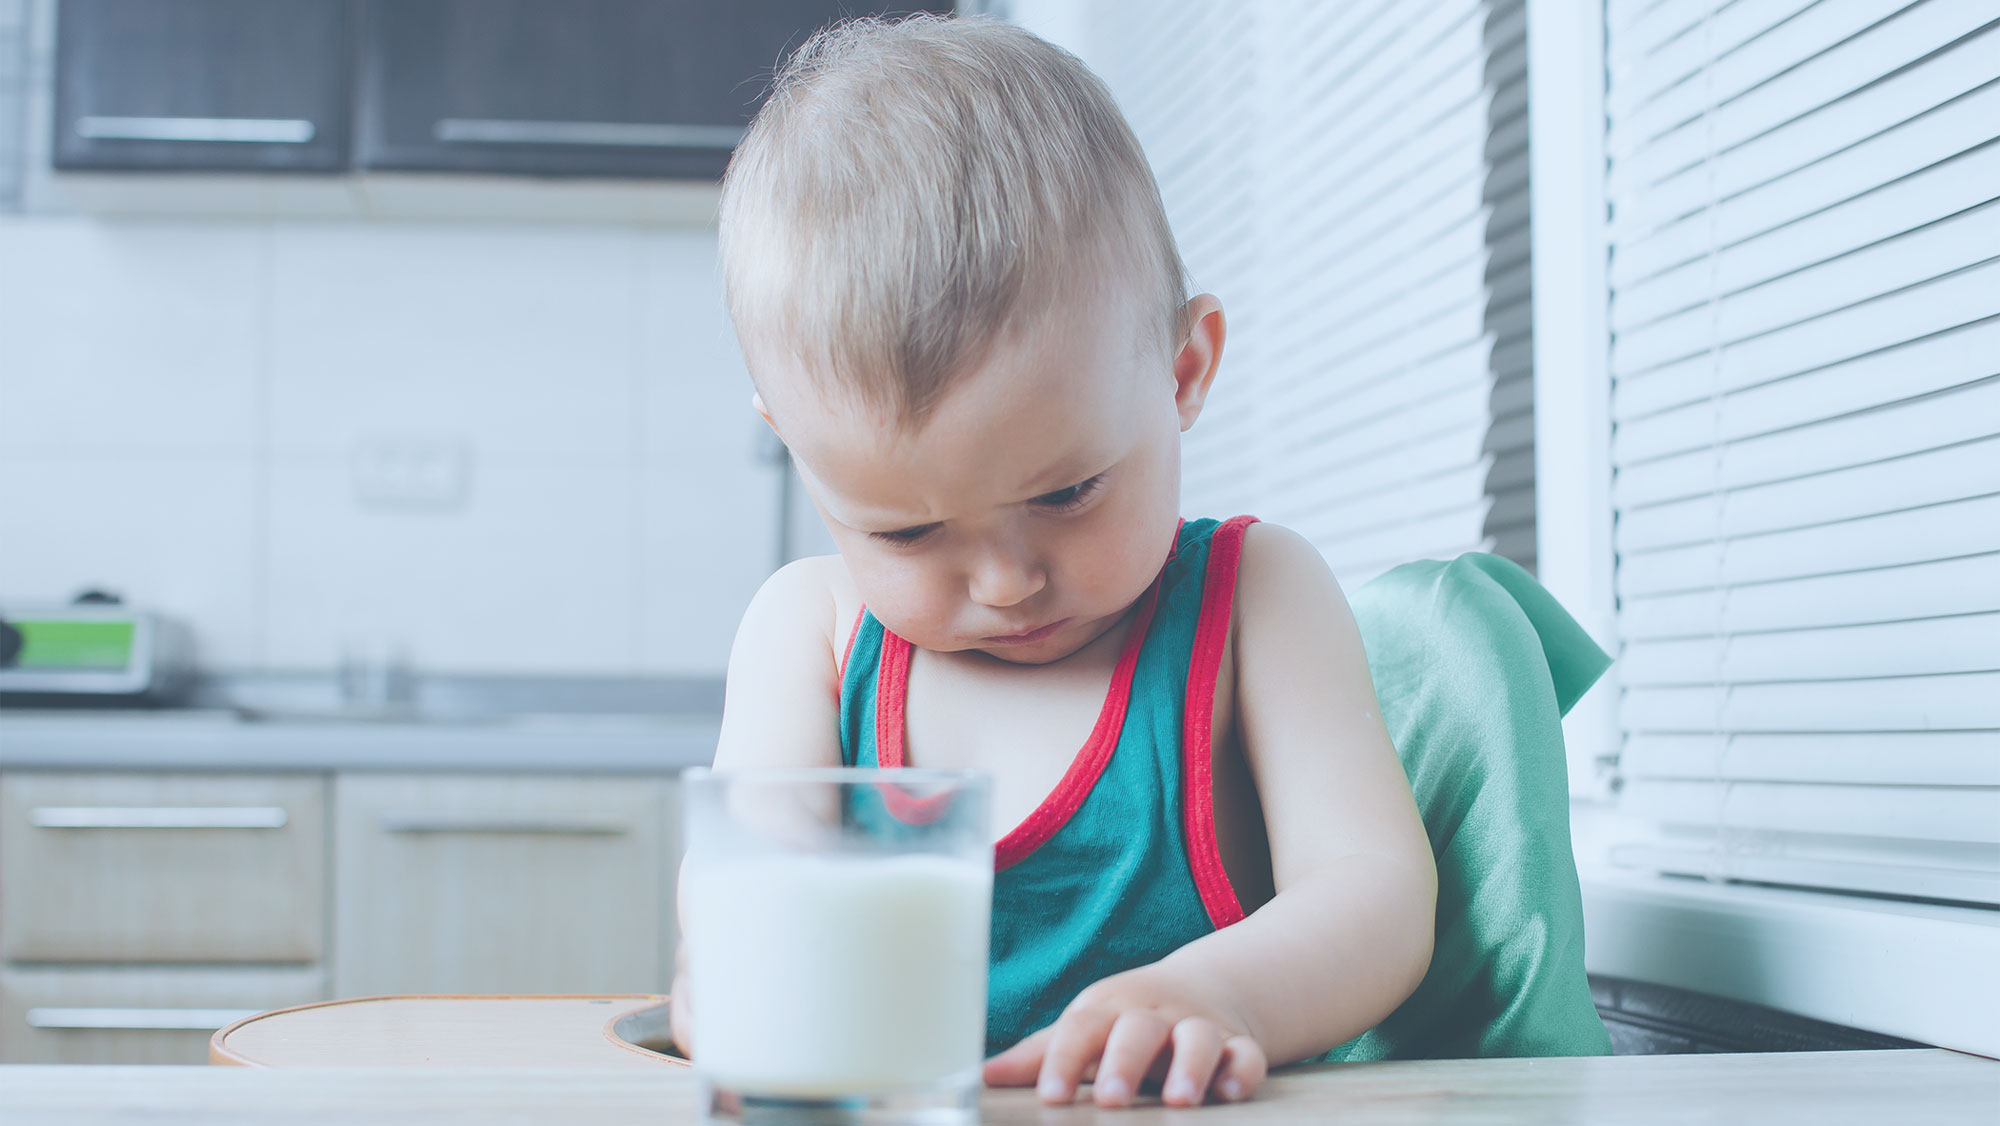 Everyone has a role to play: Reducing your child's risk of developing food allergies